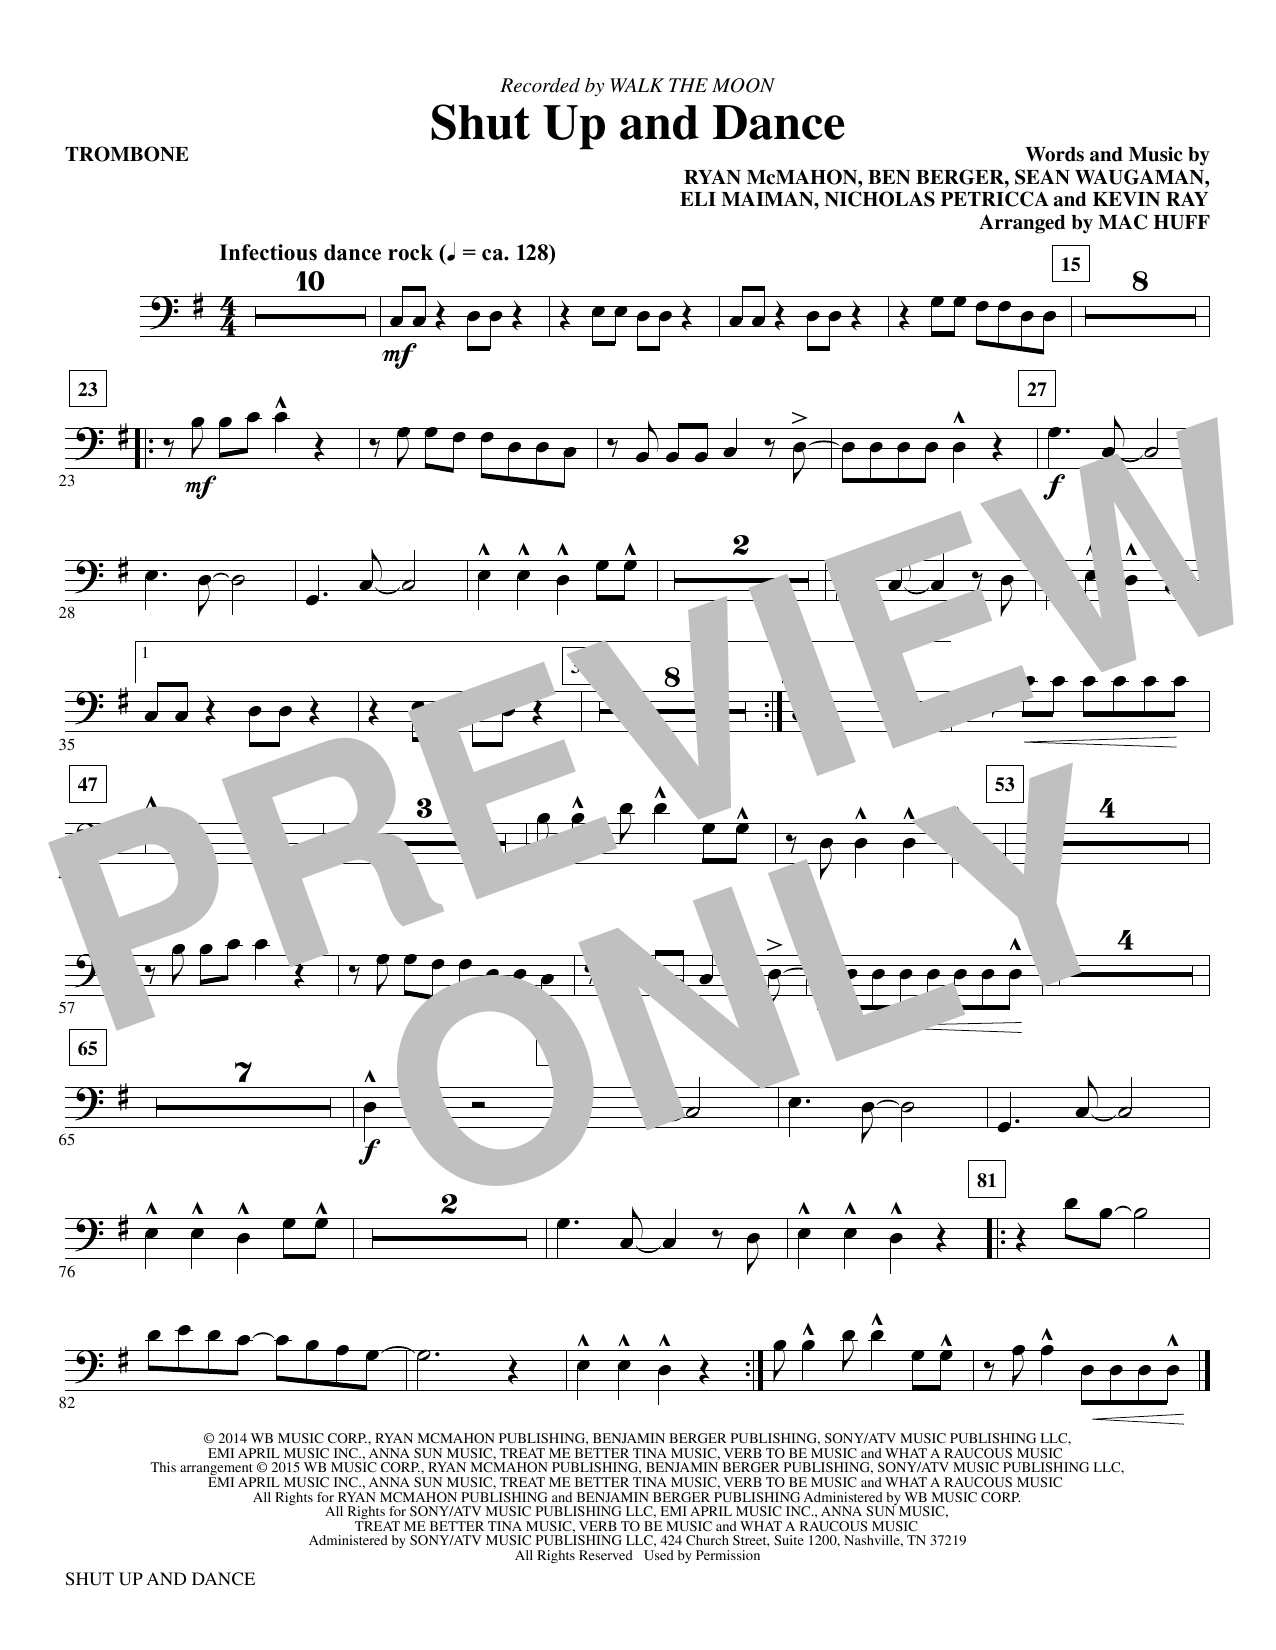 Shut Up and Dance (complete set of parts) sheet music for orchestra/band by Mac Huff, Kevin Ray, Nicholas Petricca, Ryan McMahon, Sean Waugaman and Walk The Moon. Score Image Preview.